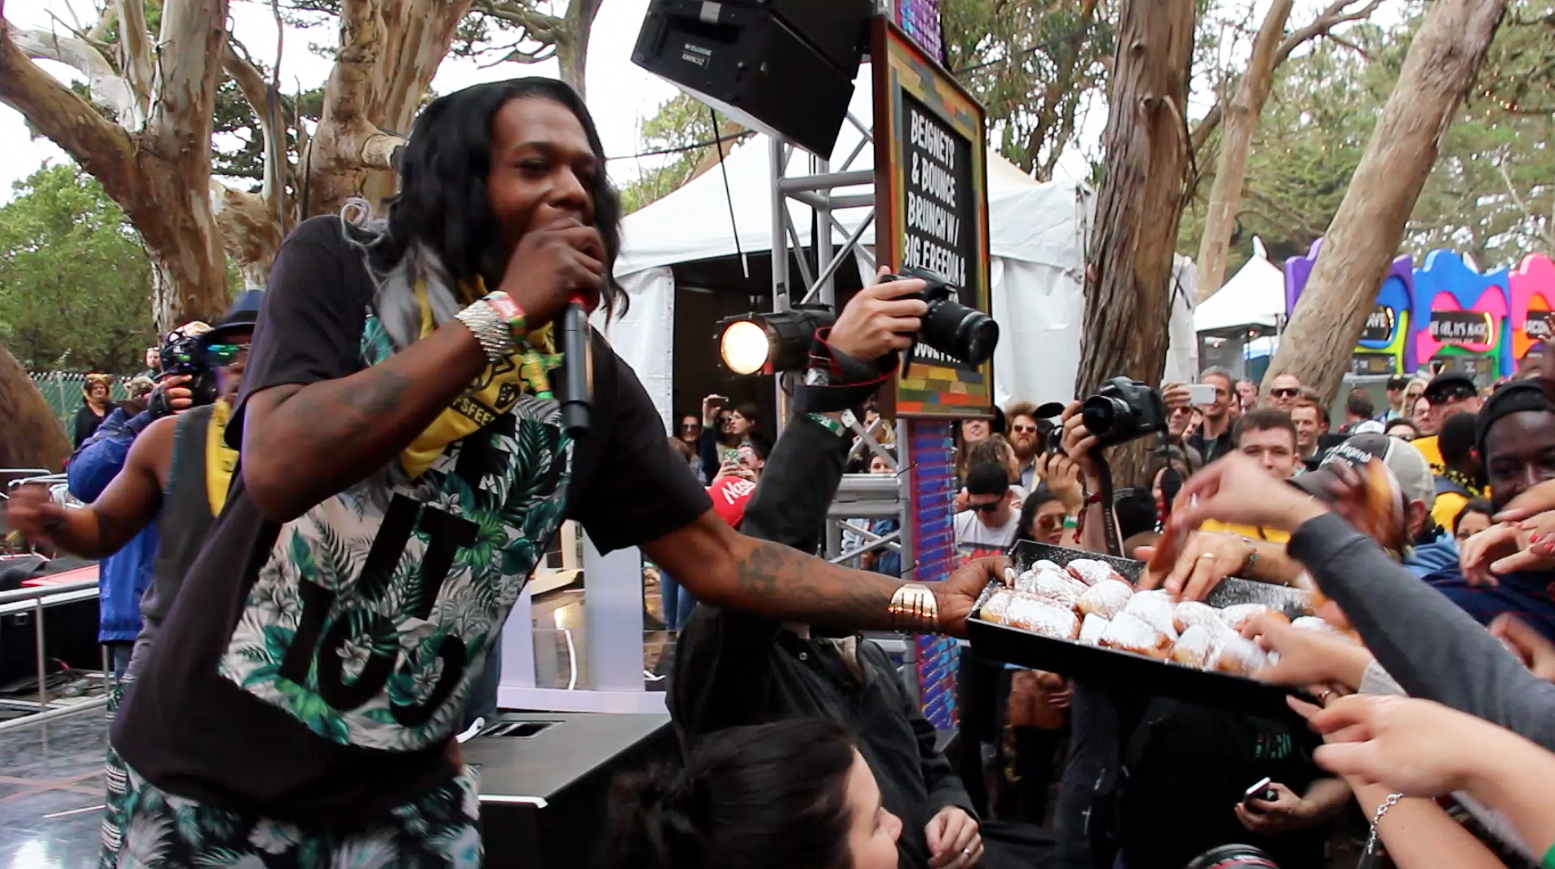 Big Freedia serving up Brenda's beignets at the GastroMagic stage.